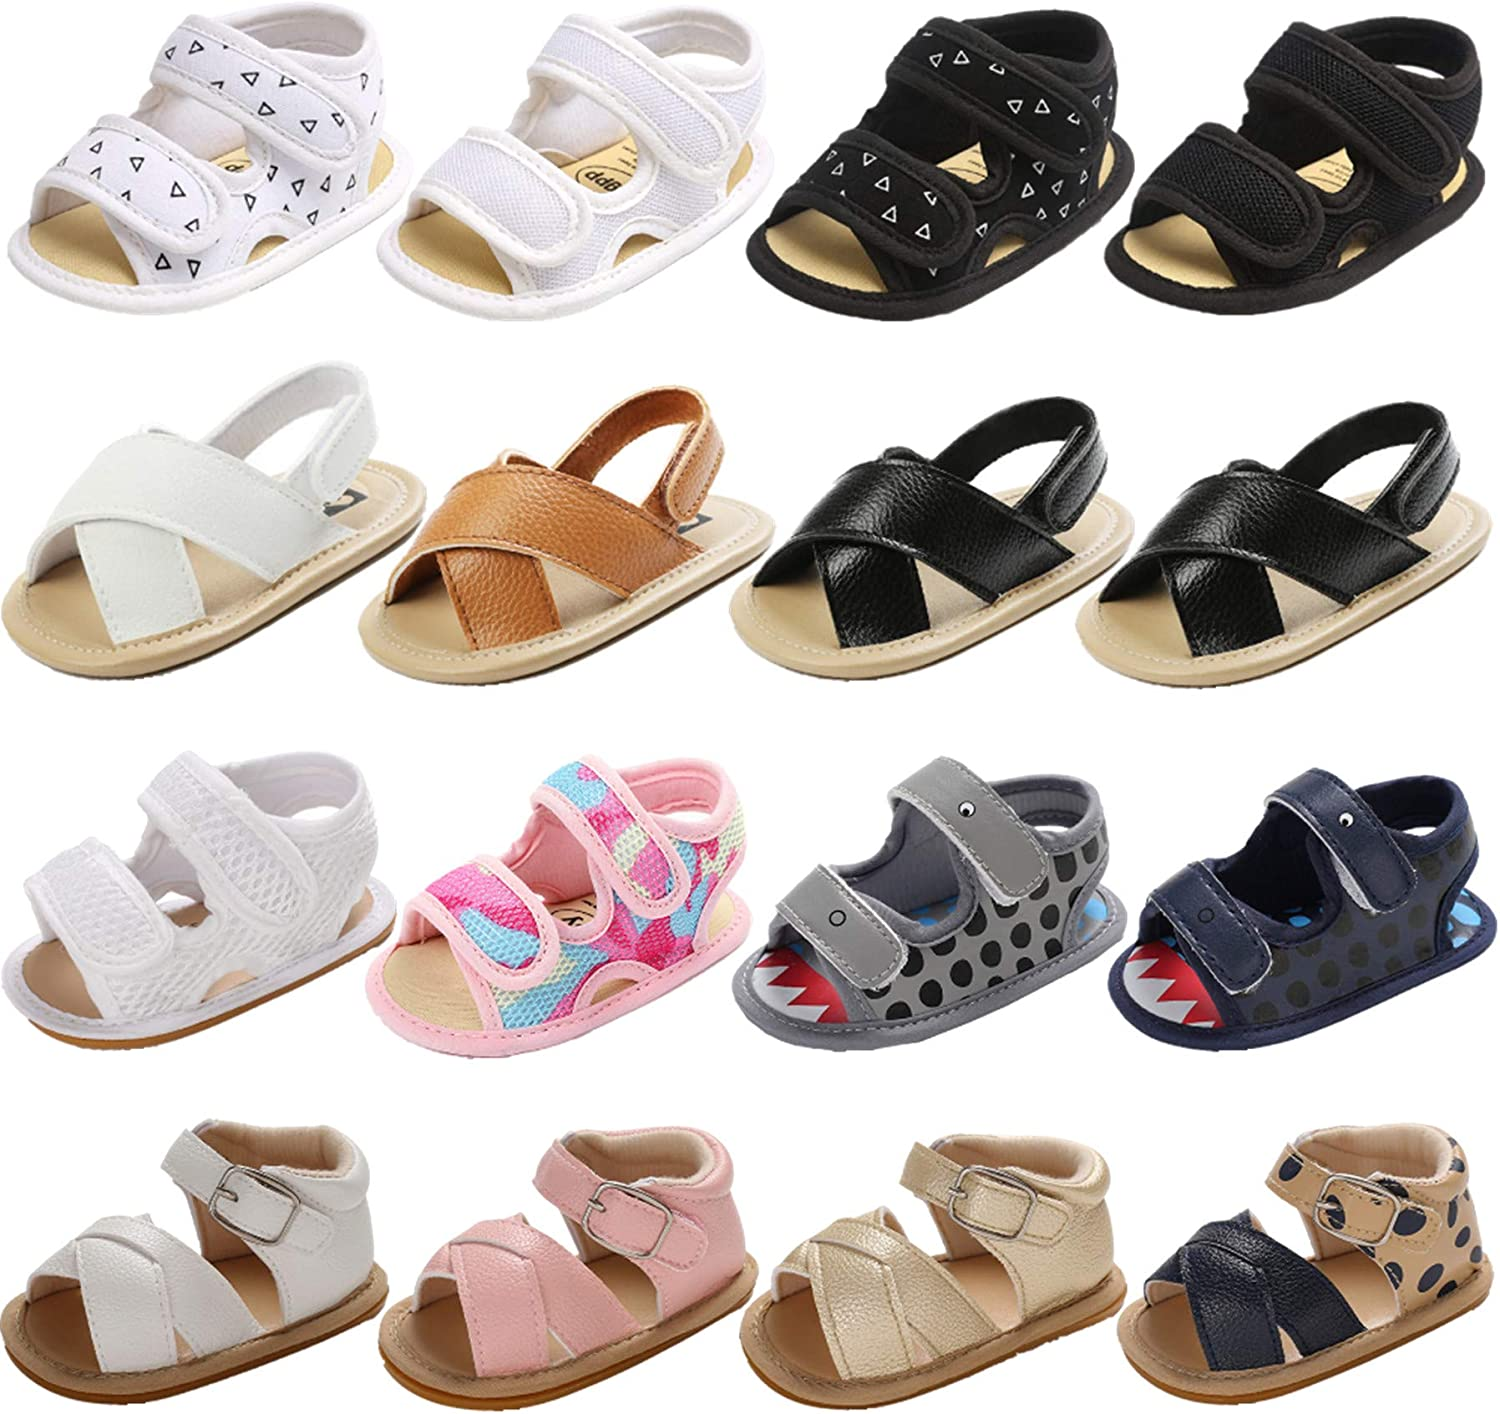 Baby Girls Boys Sandals Premium Breathable Anti-Slip Rubber Sole Infant Summer Outdoor Shoes Toddler First Walkers